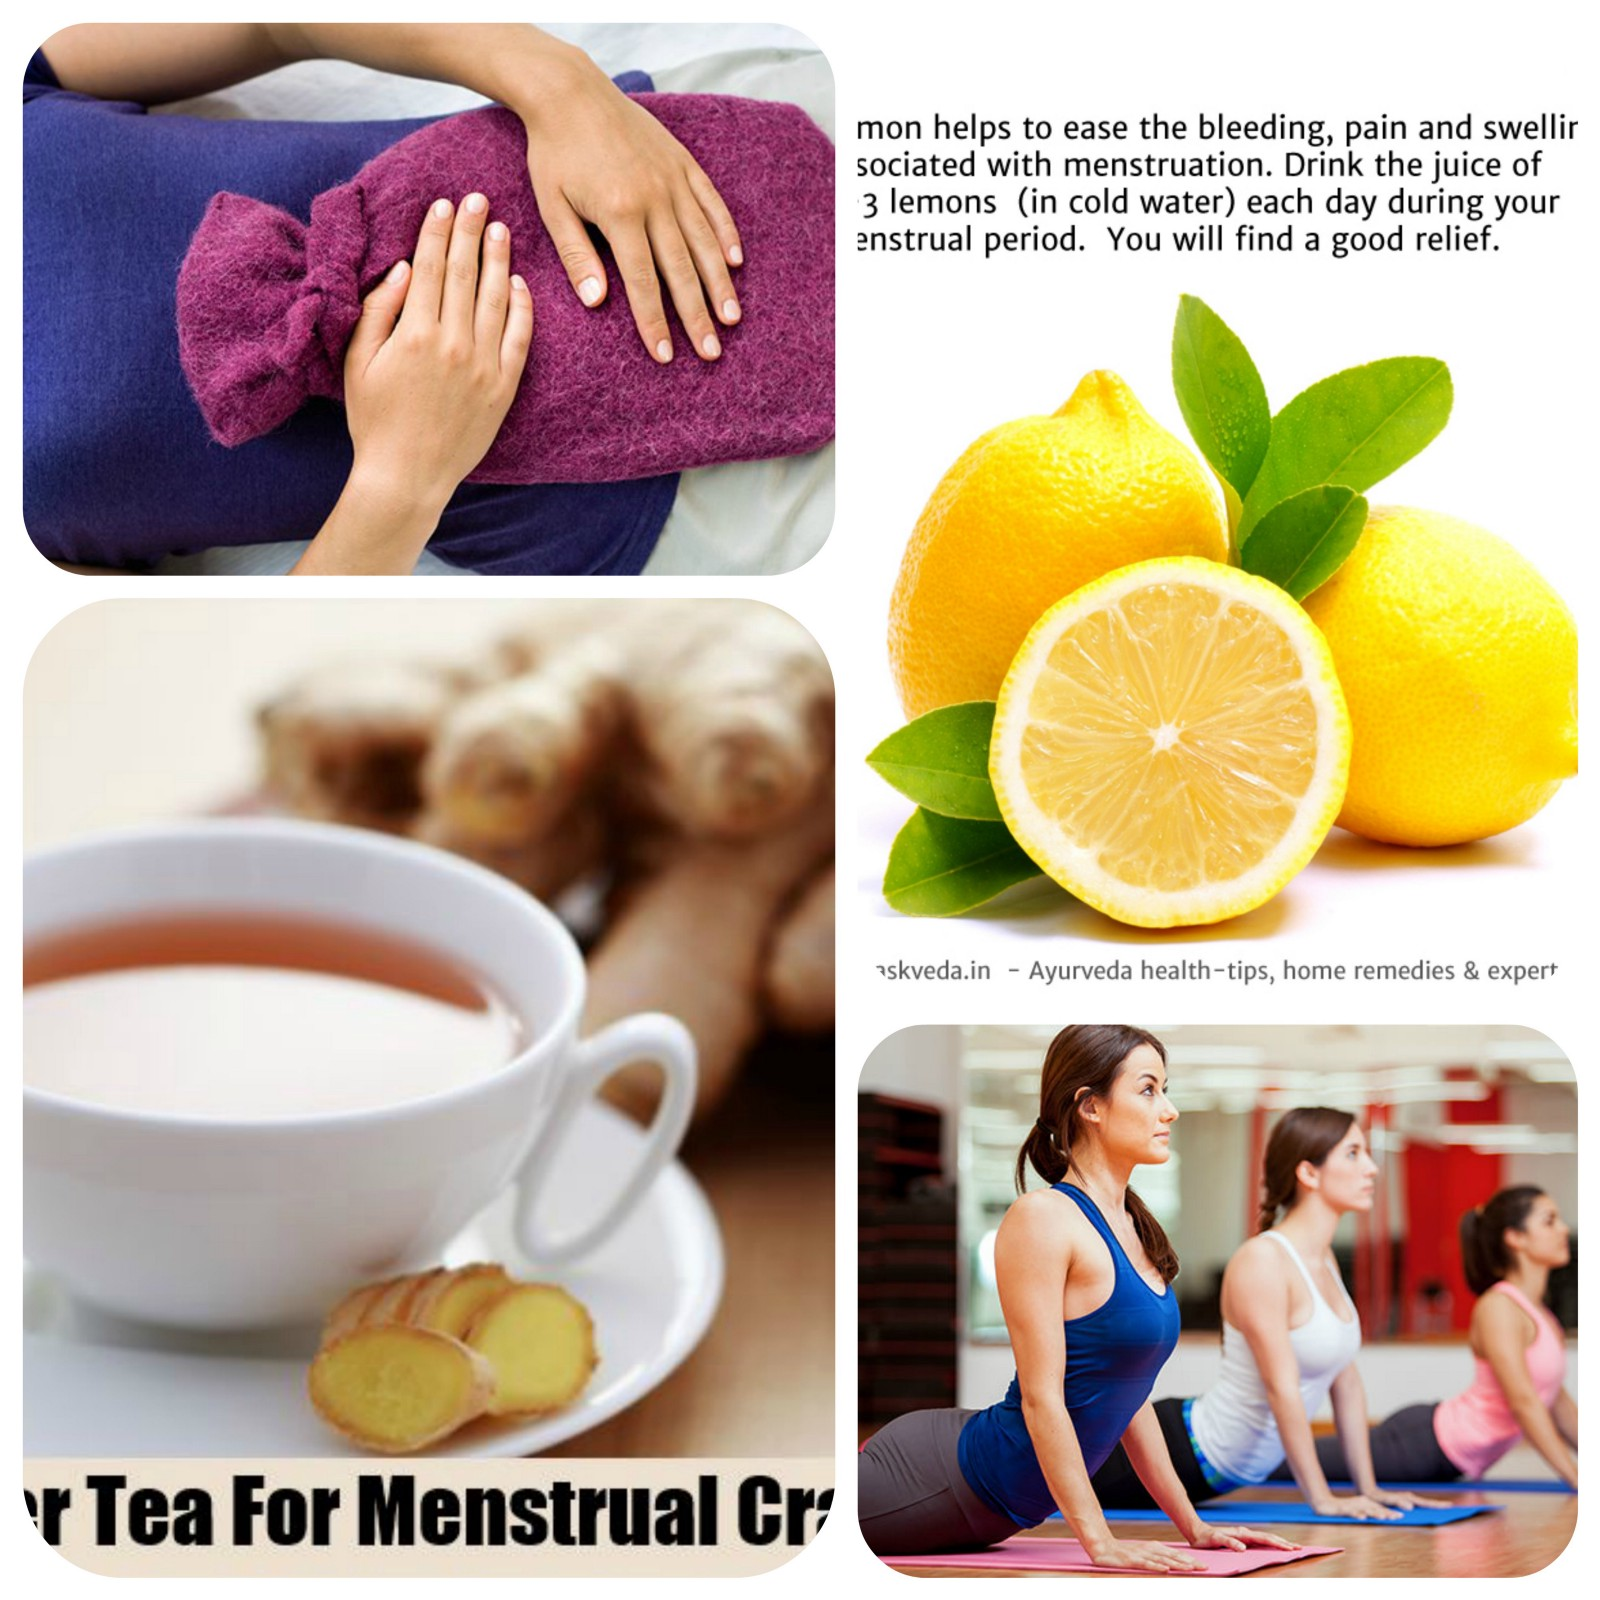 What is the cause of pain during menstruation